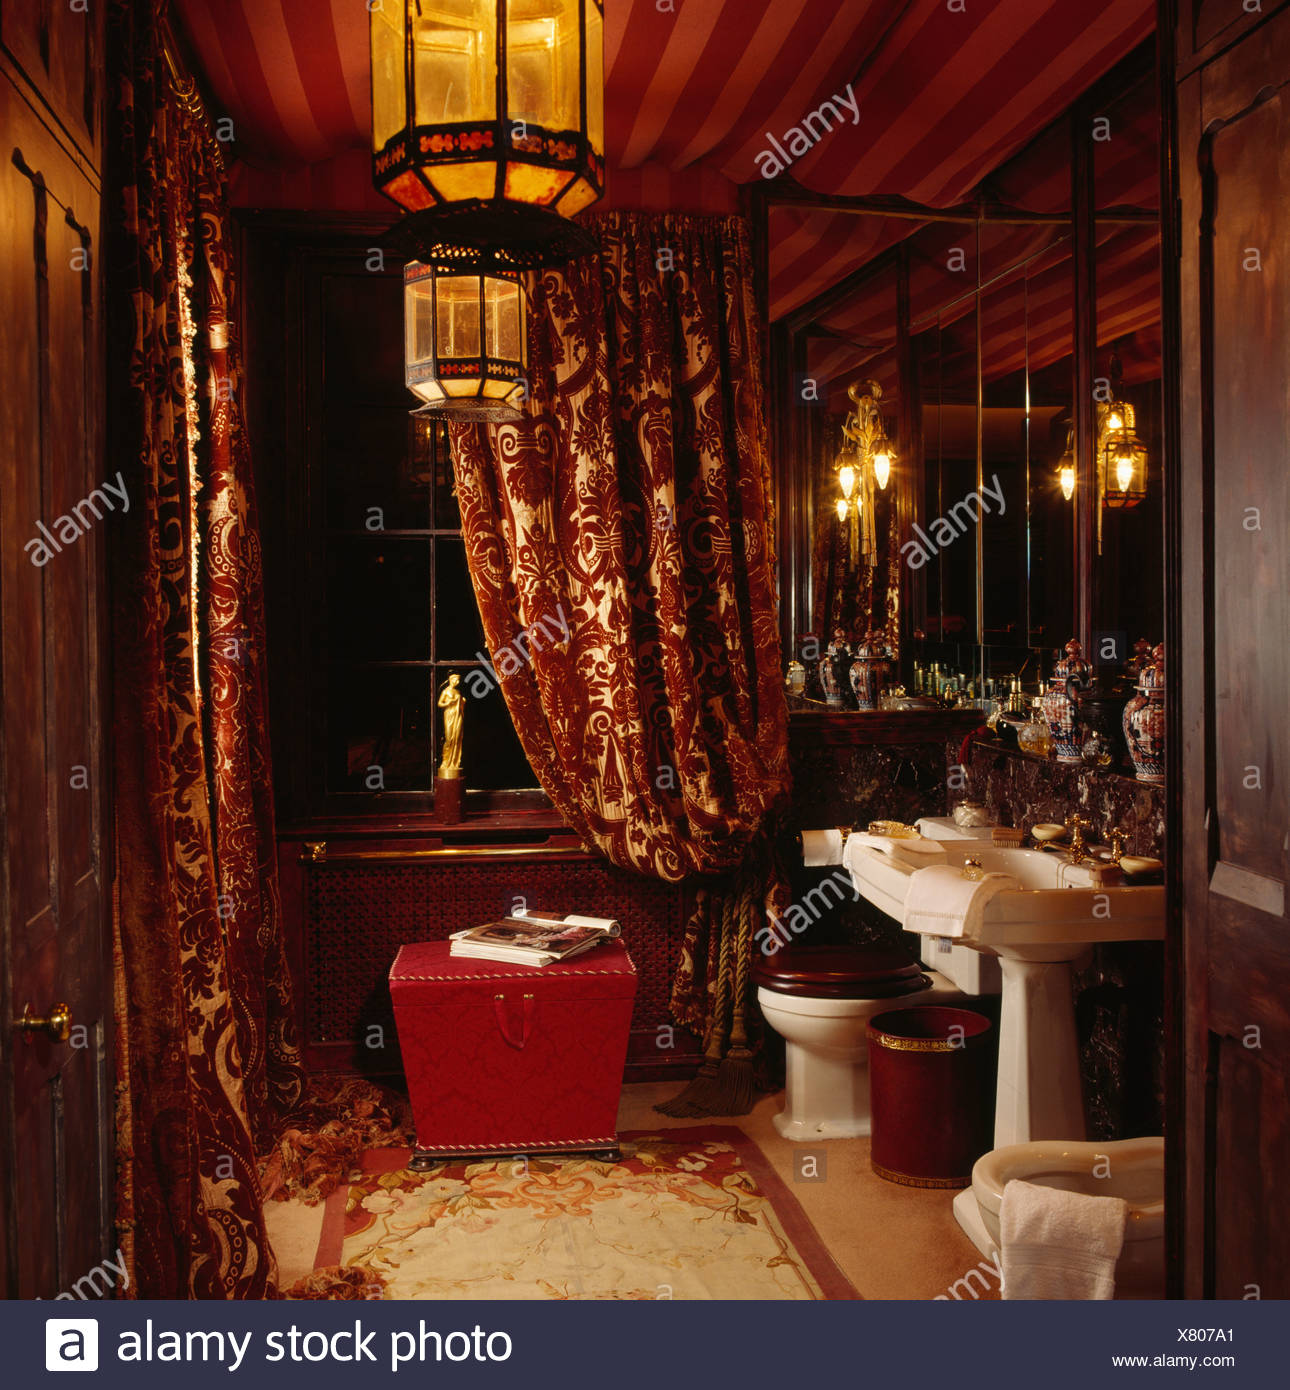 Sessel Dreißiger Jahre Interiors Bathrooms Curtains Stockfotos And Interiors